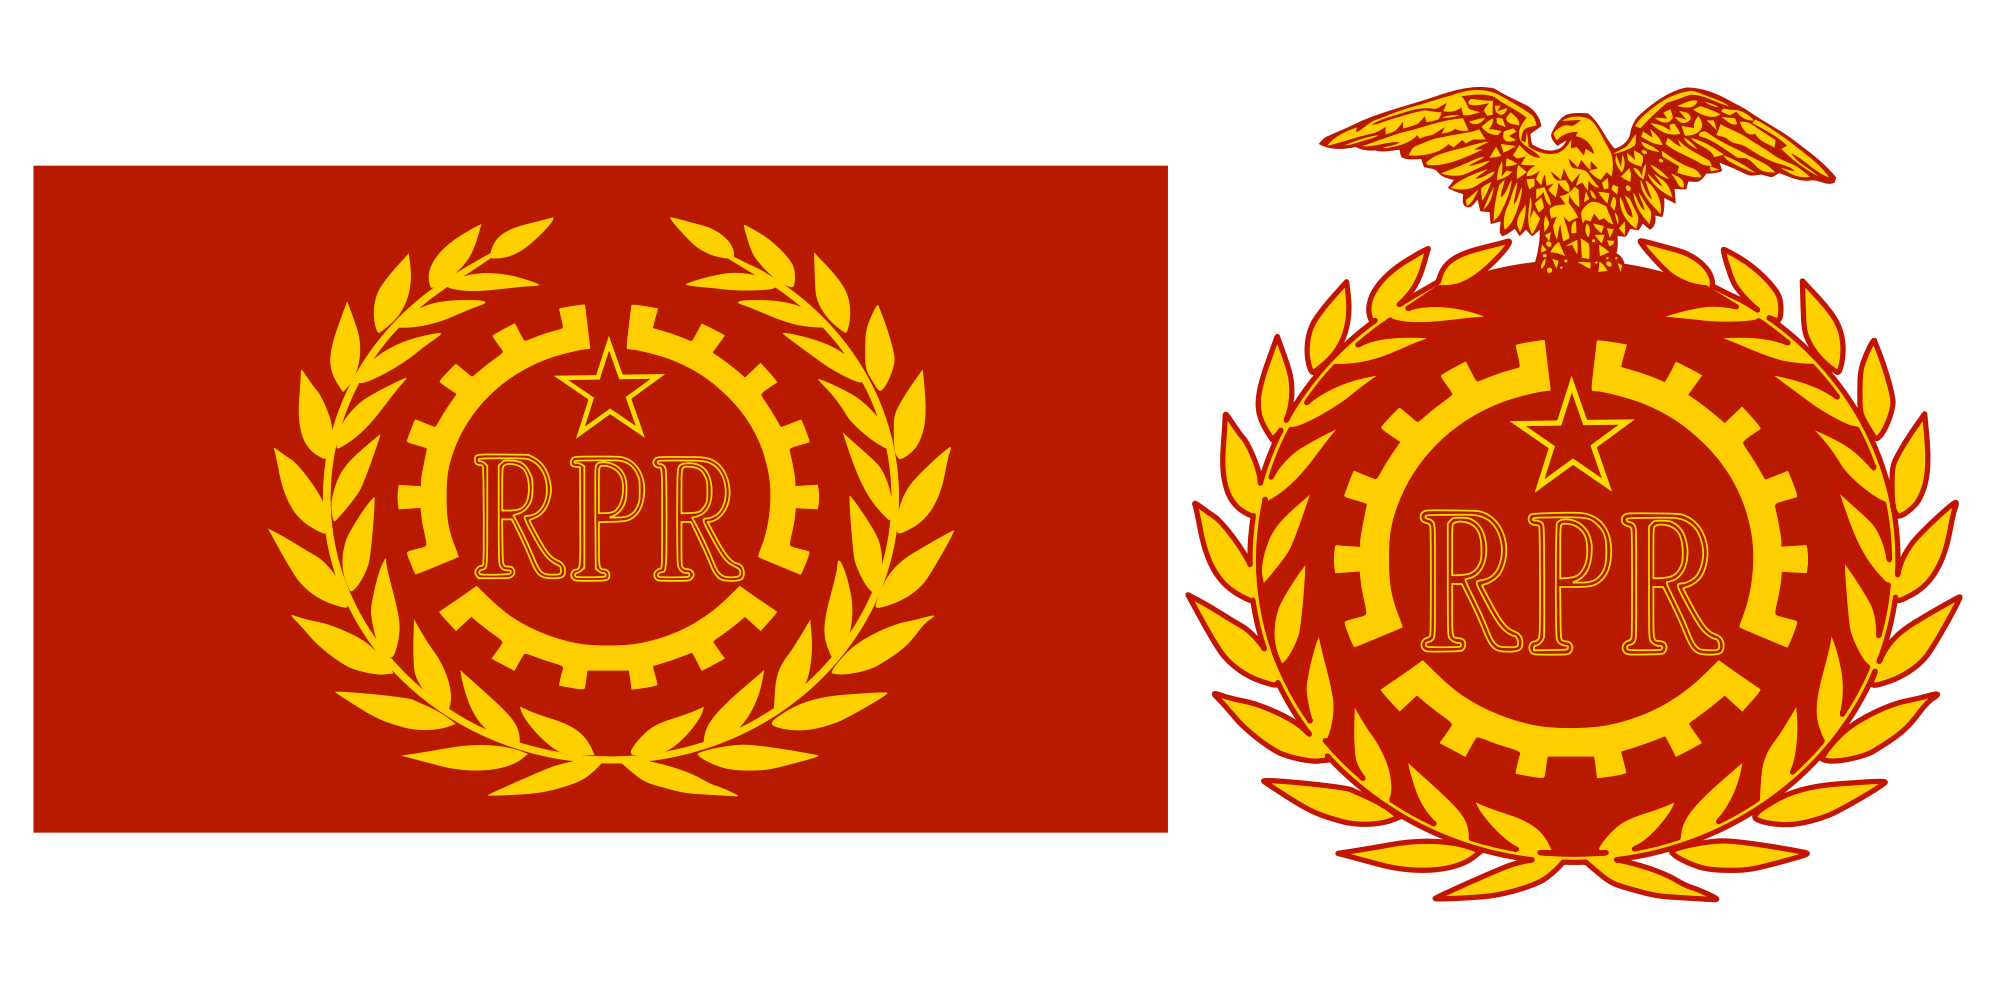 Rome clipart flag rome. People s republic of